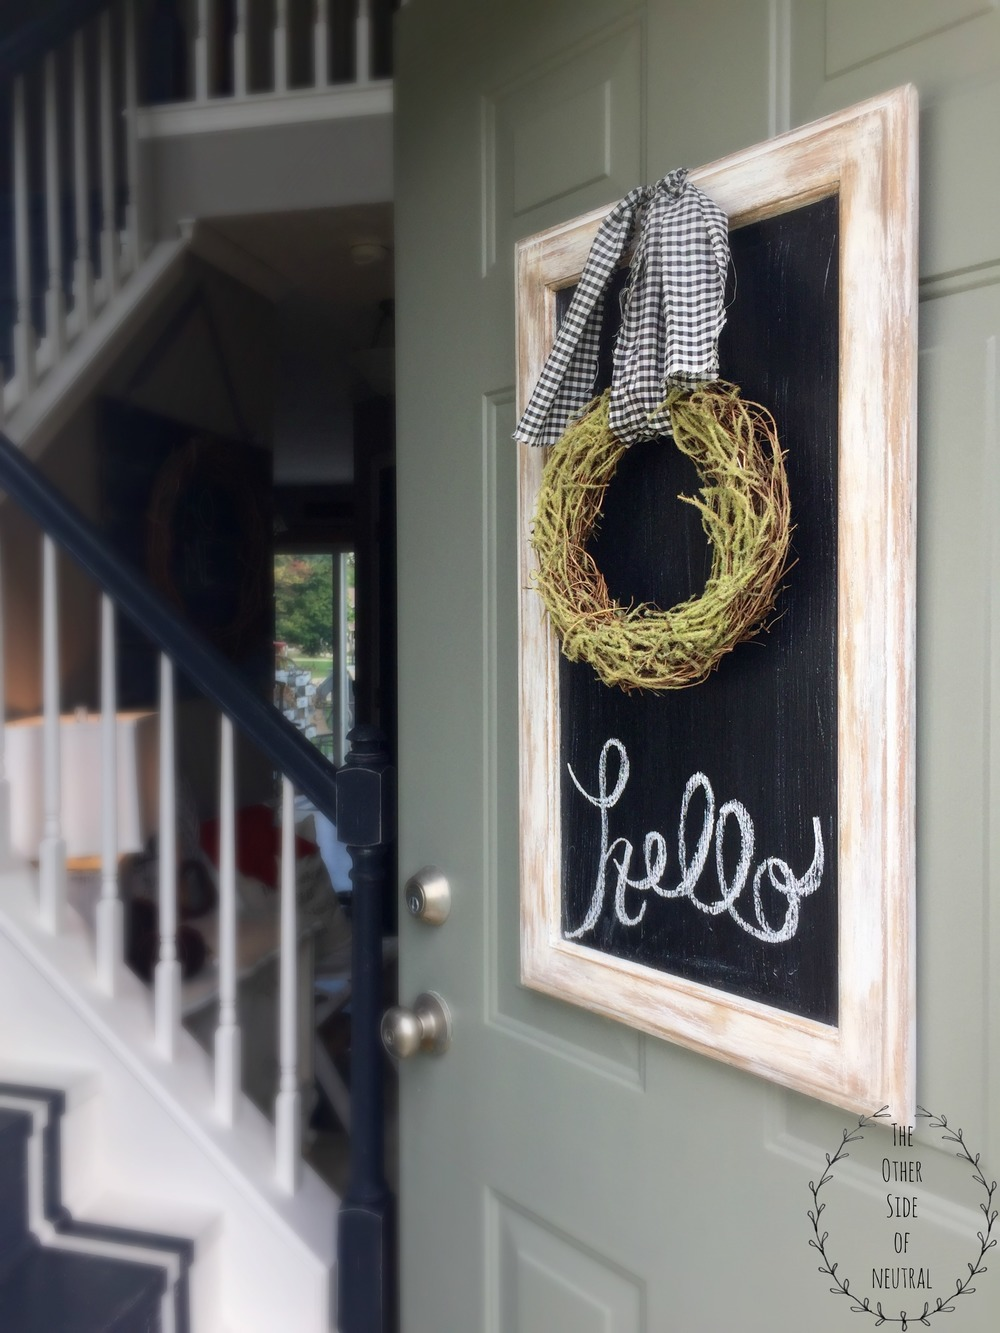 & Cabinet Door Turned Chalk Board \u2014 The Other Side of Neutral Pezcame.Com